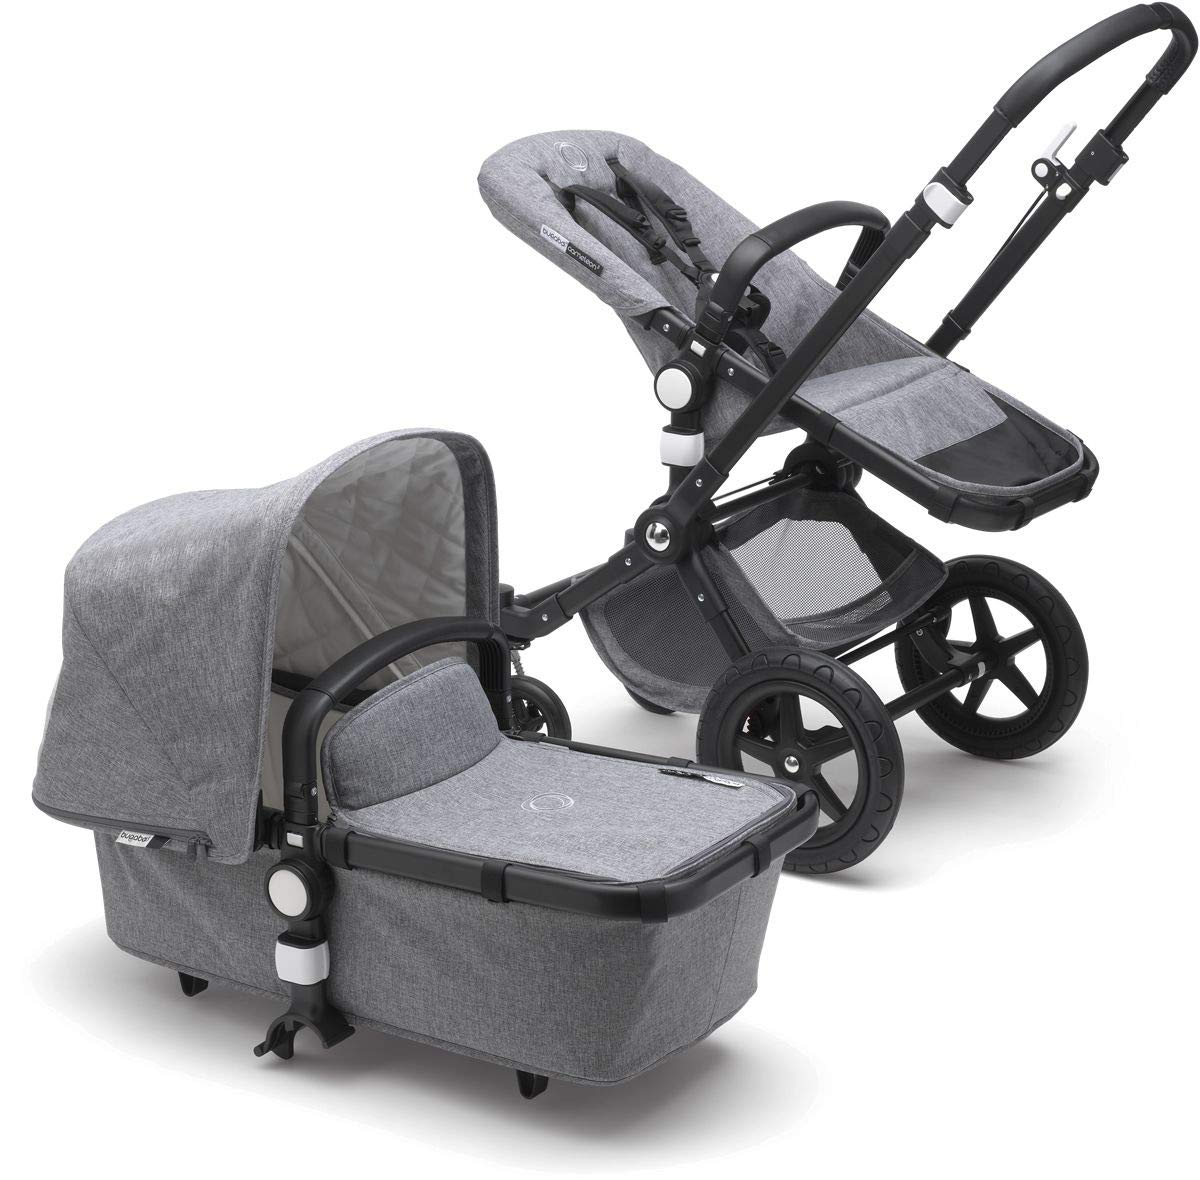 Bugaboo Cameleon3 Plus Classic Complete Stroller, Black/Grey Melange - Versatile, Foldable Mid-Size Stroller with Adjustable Handlebar, Reversible Seat and Car Seat Compatibility by Bugaboo